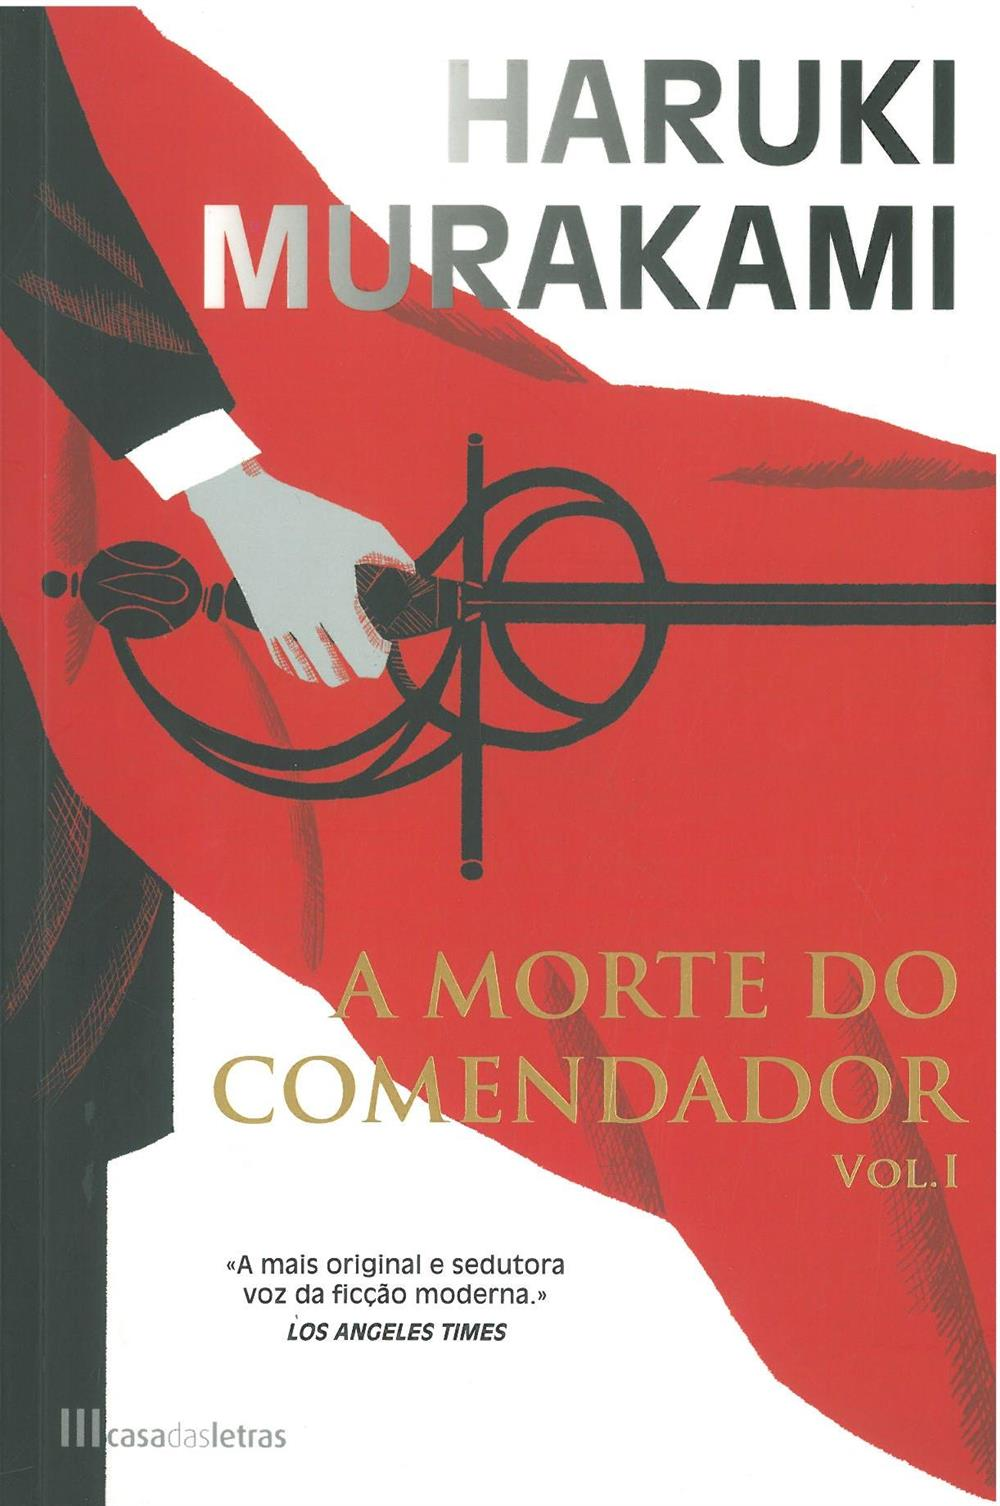 A morte do comendador.jpg